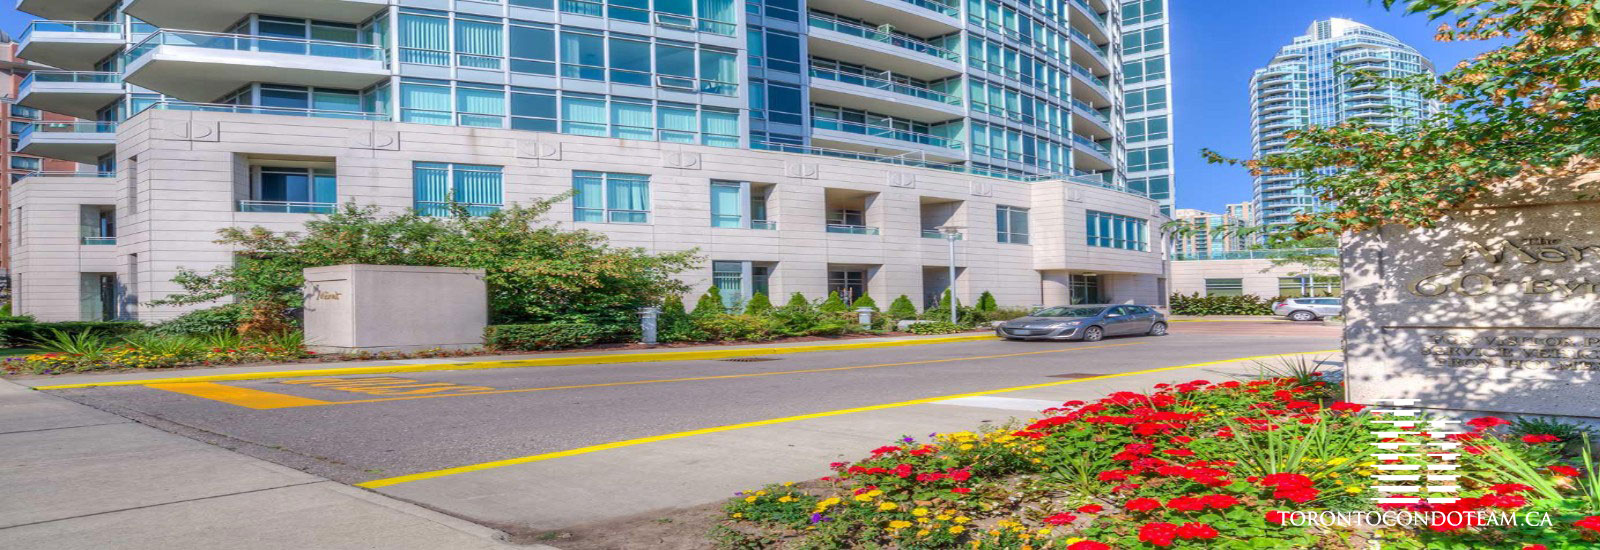 60 Byng Avenue Condos For Sale